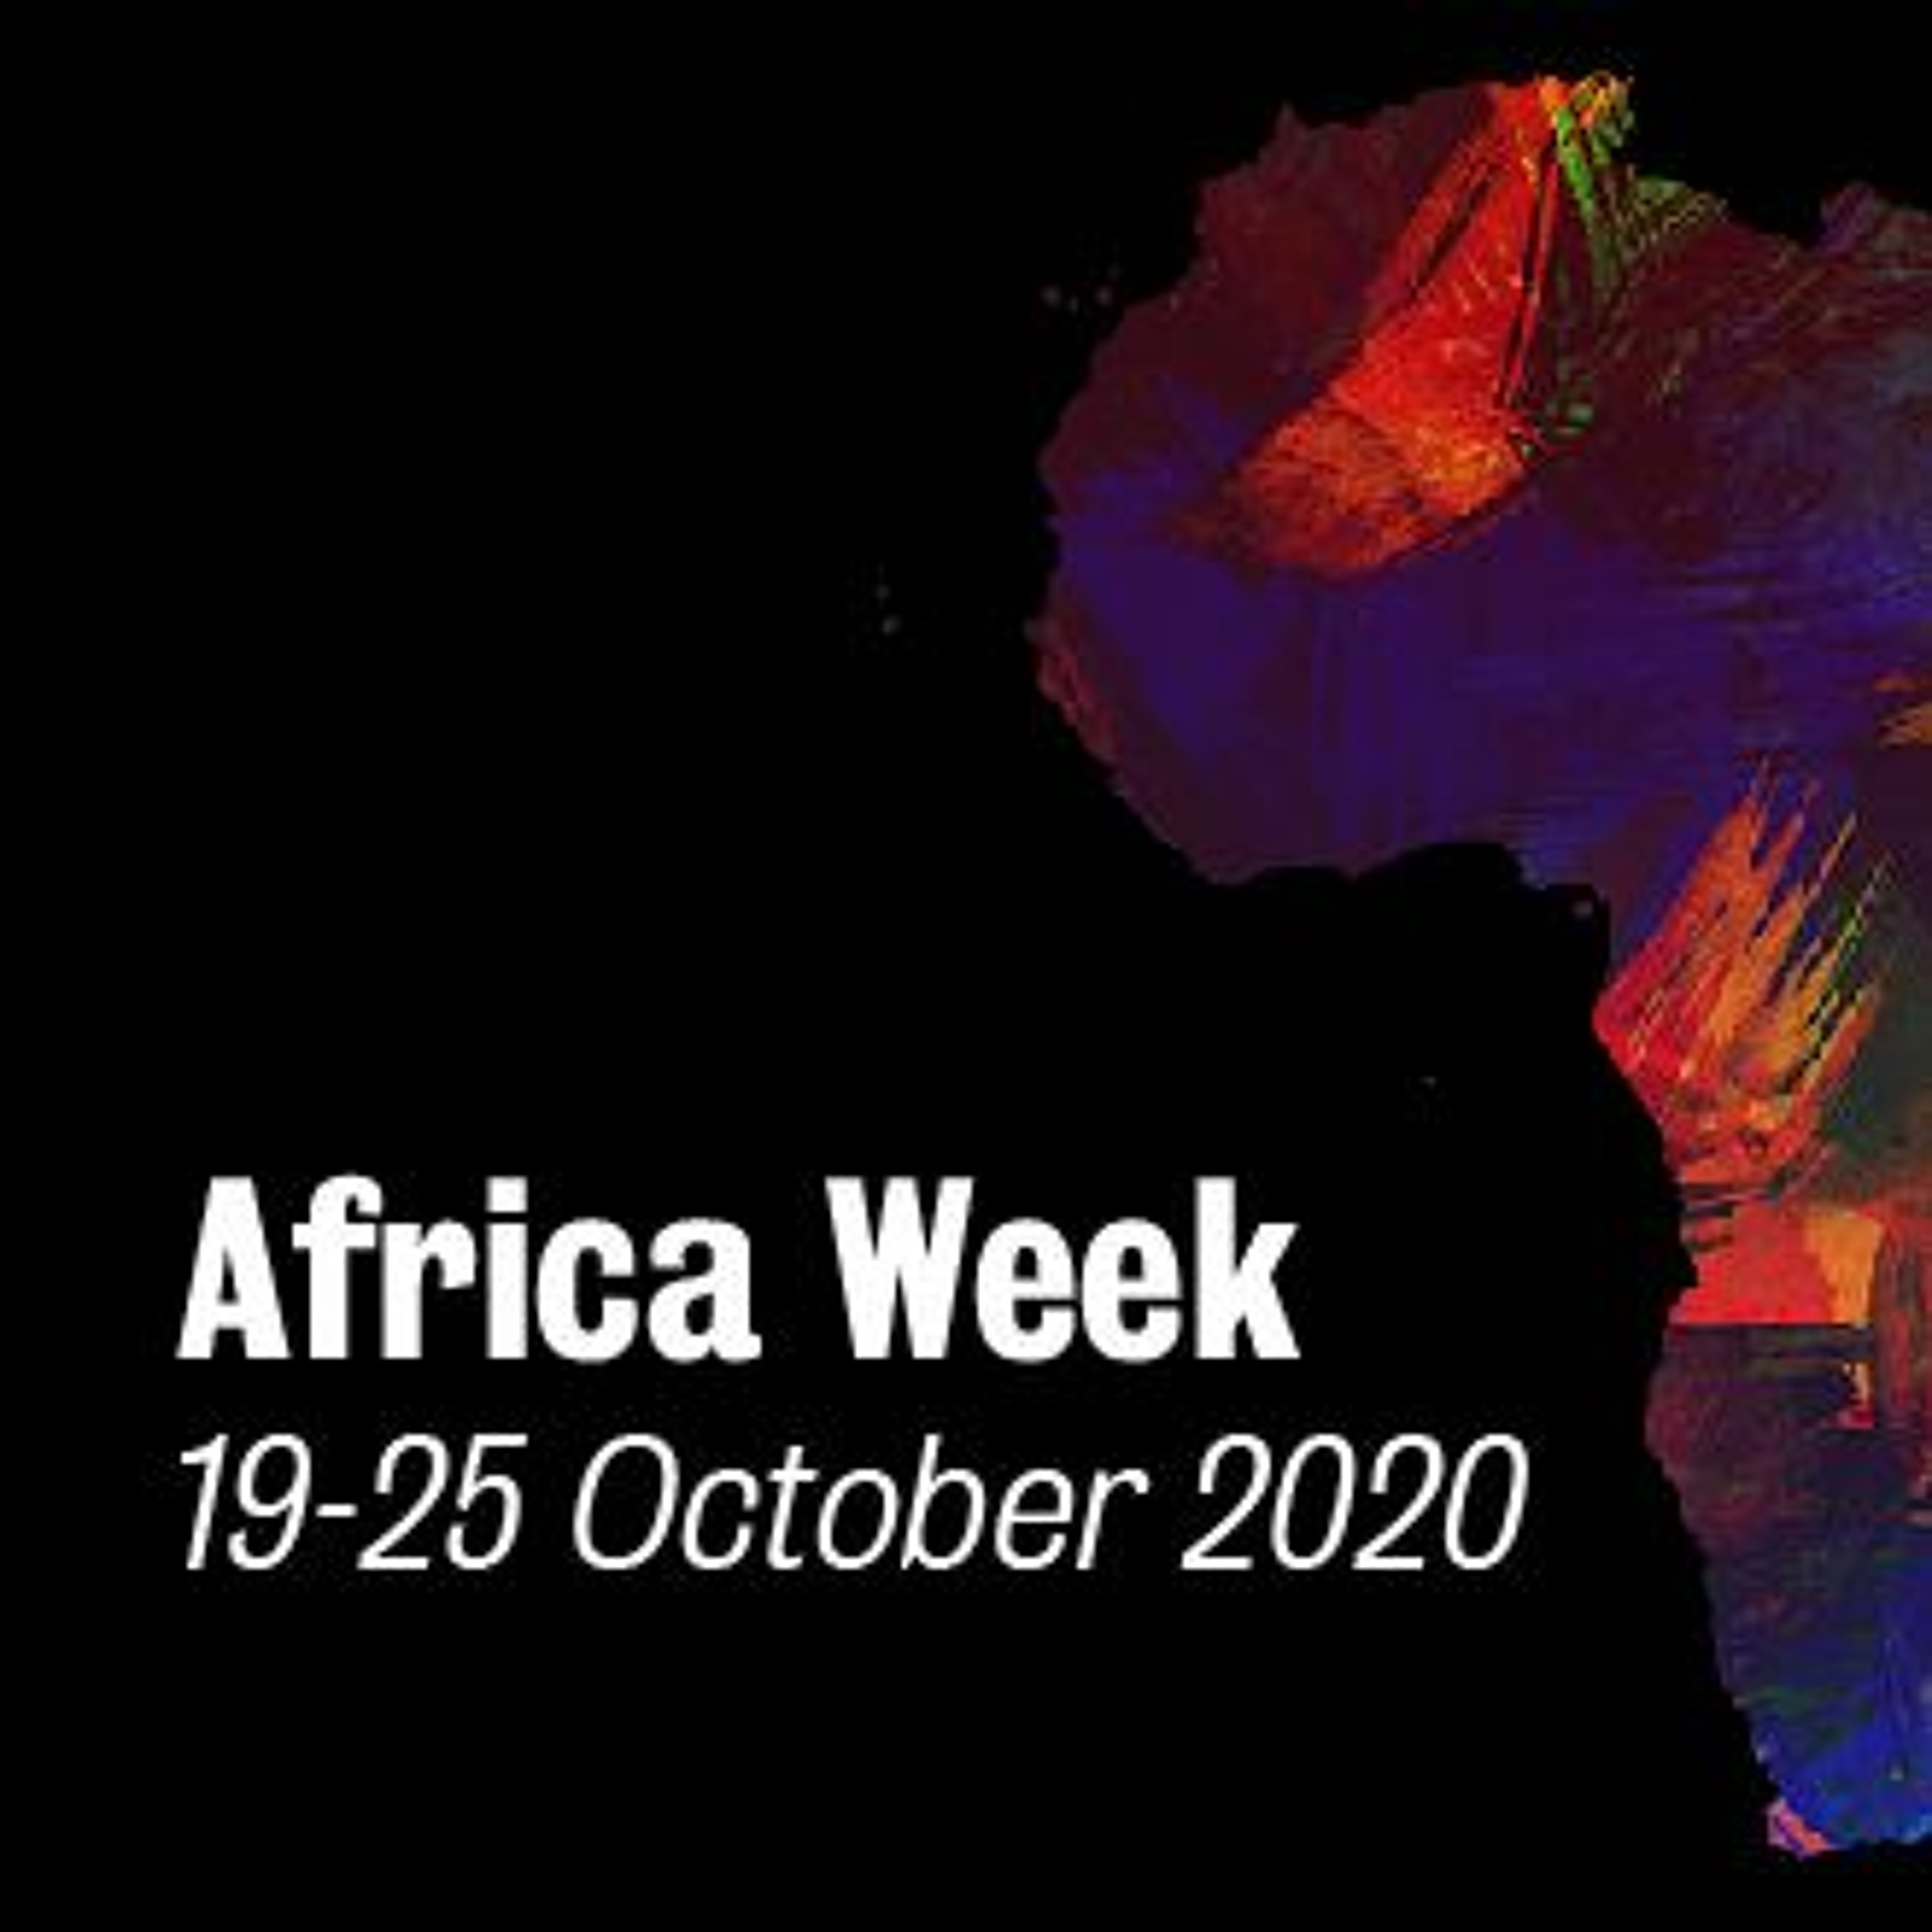 Africa week: Special Magazine Edition on Black History Month